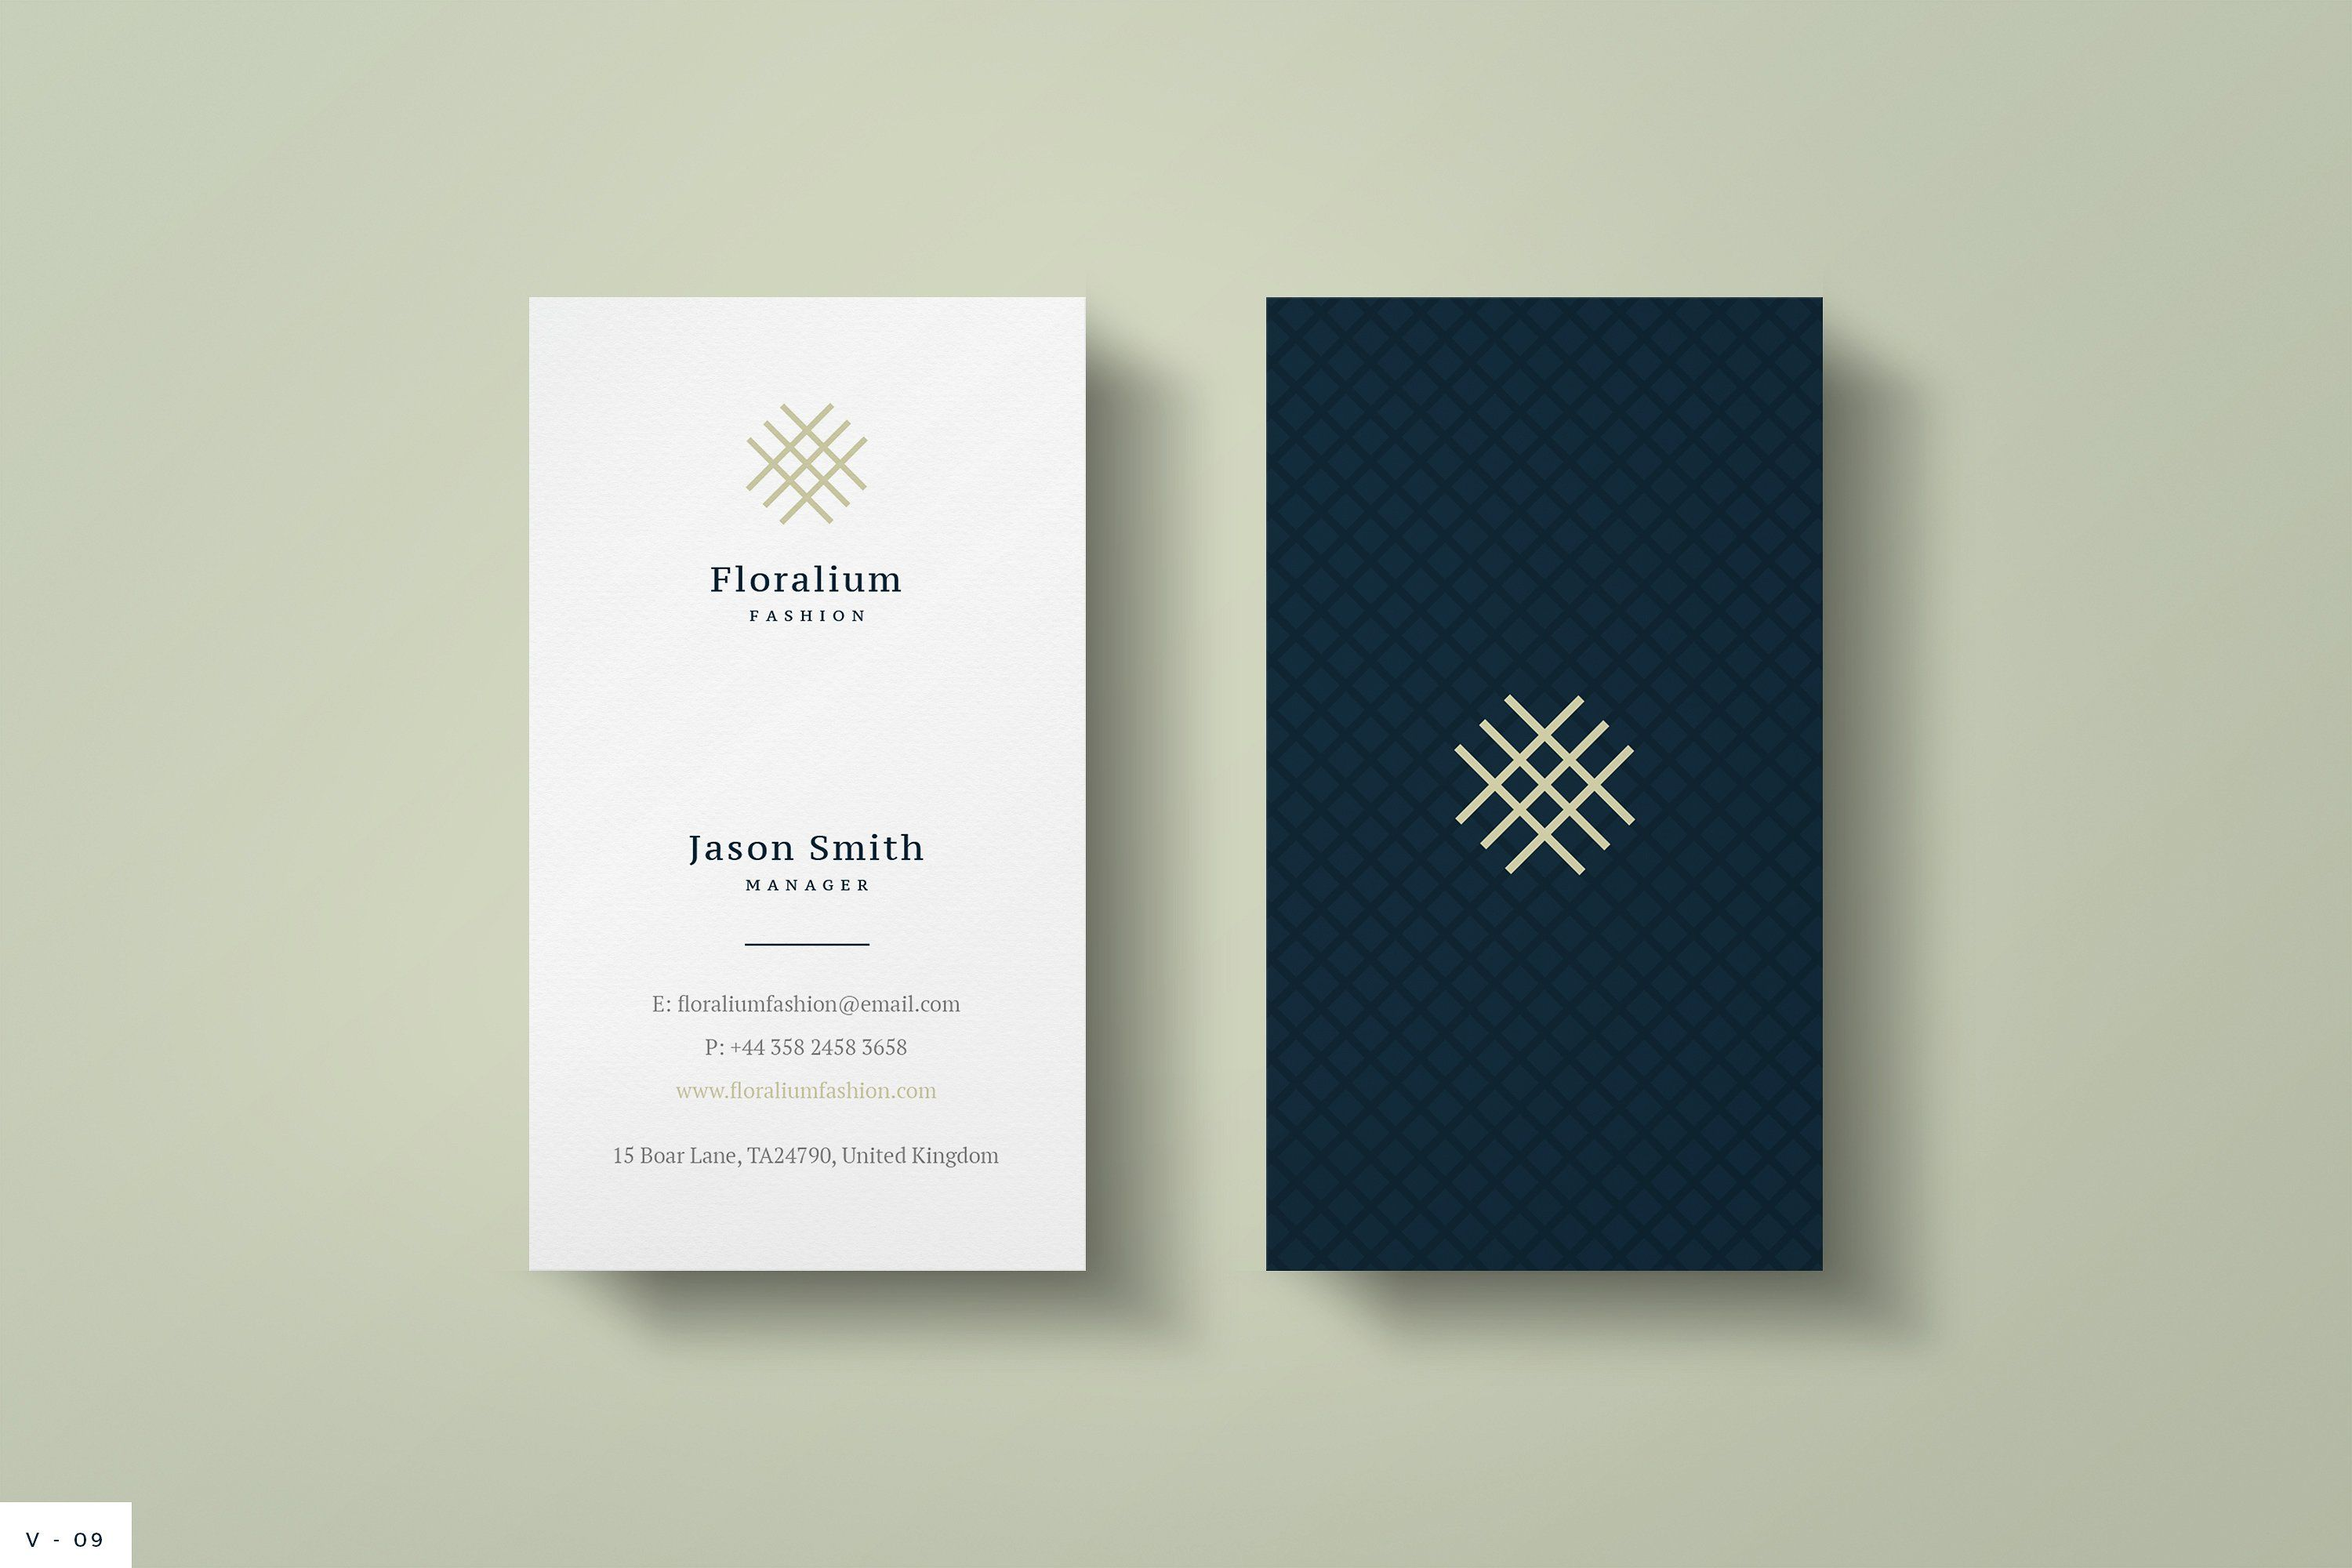 Business Card Minimalist Business Cards Cleaning Business Cards Business Card Design